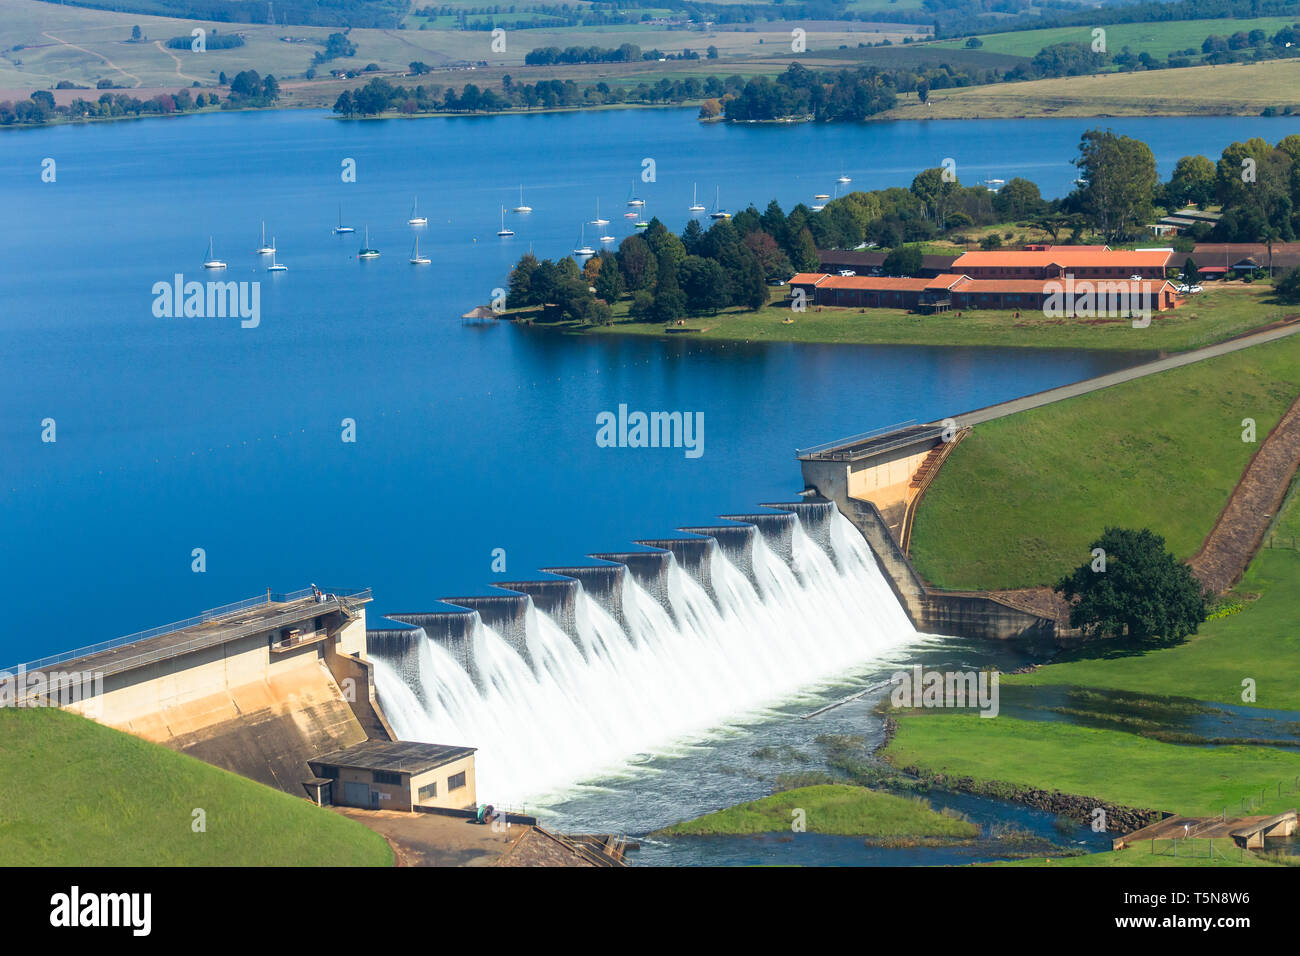 Flying air photo of dam wall overflowing waters moored boats scenic countryside landscape. - Stock Image